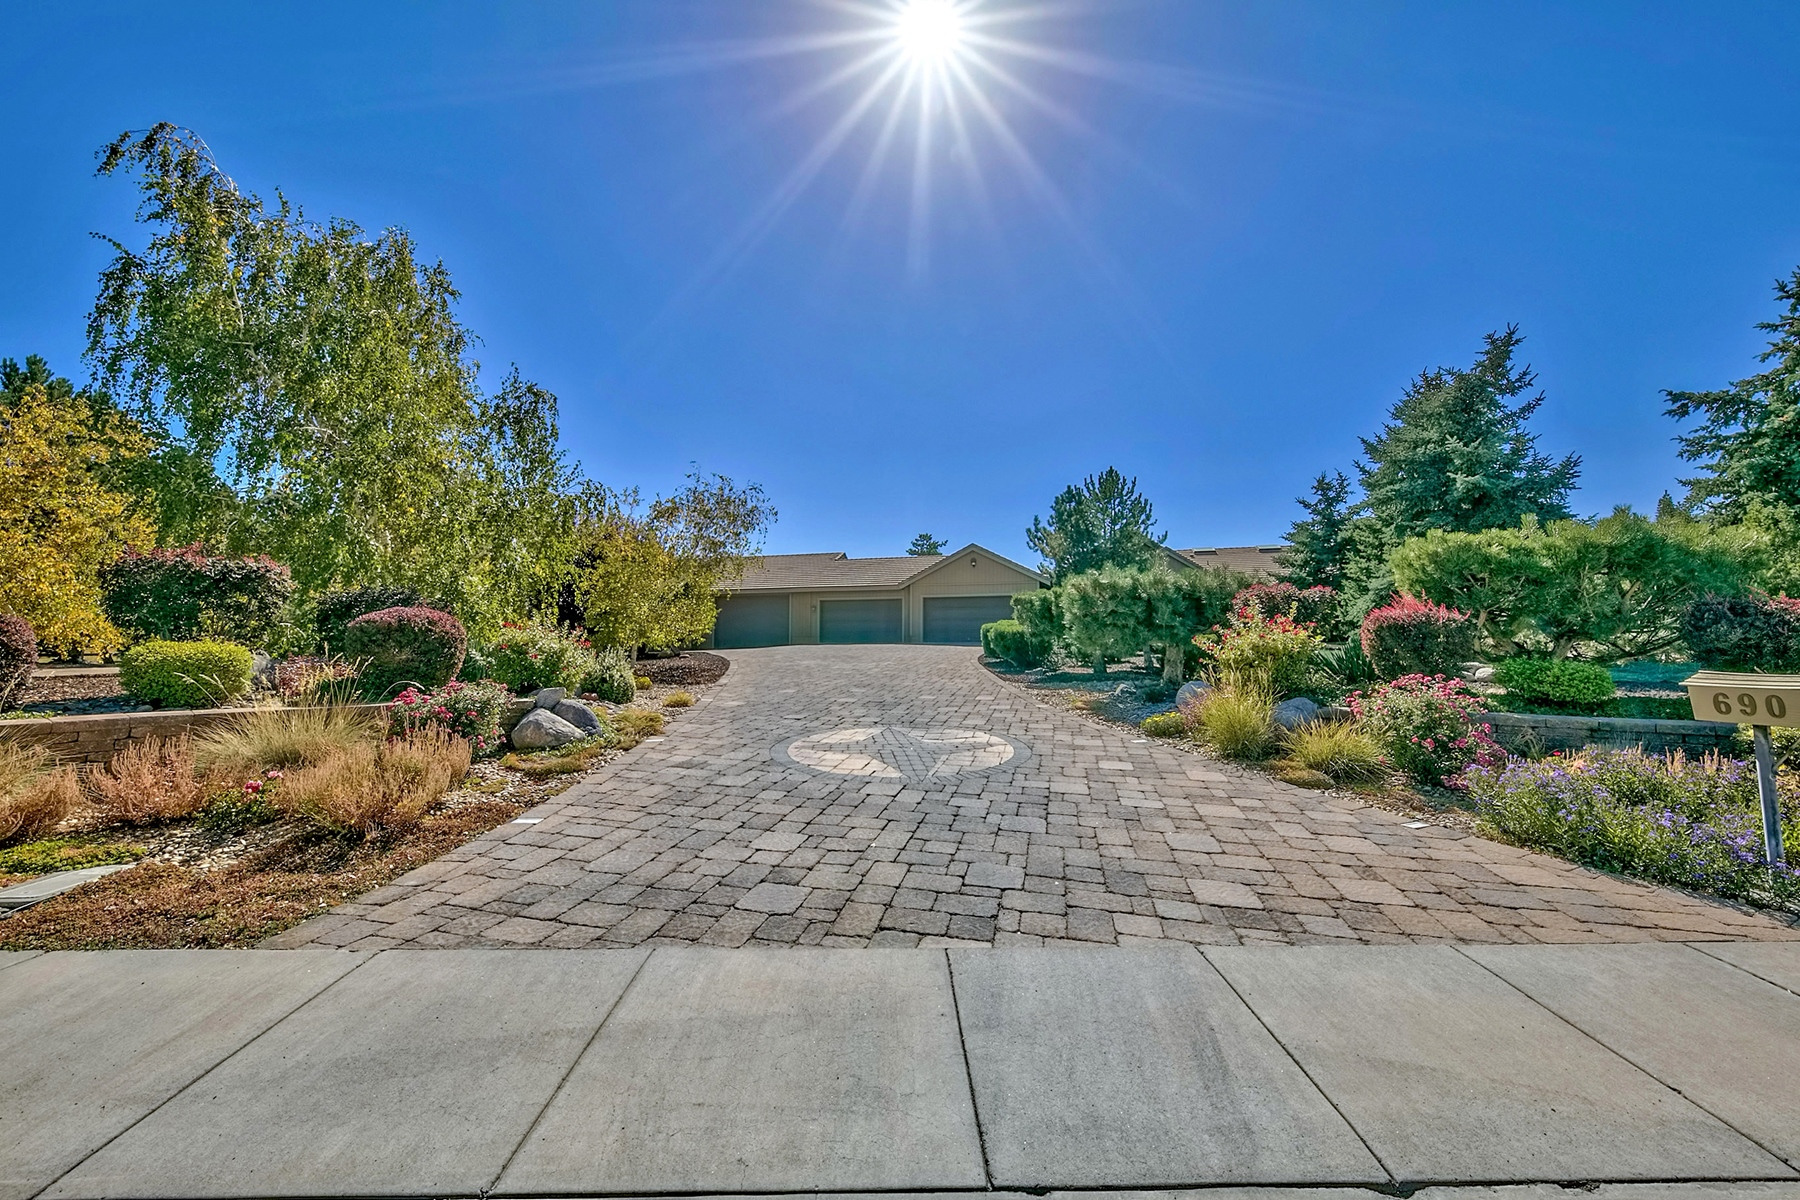 Additional photo for property listing at 690 Meadow Vista Drive, Reno, Nevada 690 Meadow Vista Drive Reno, Nevada 89511 United States